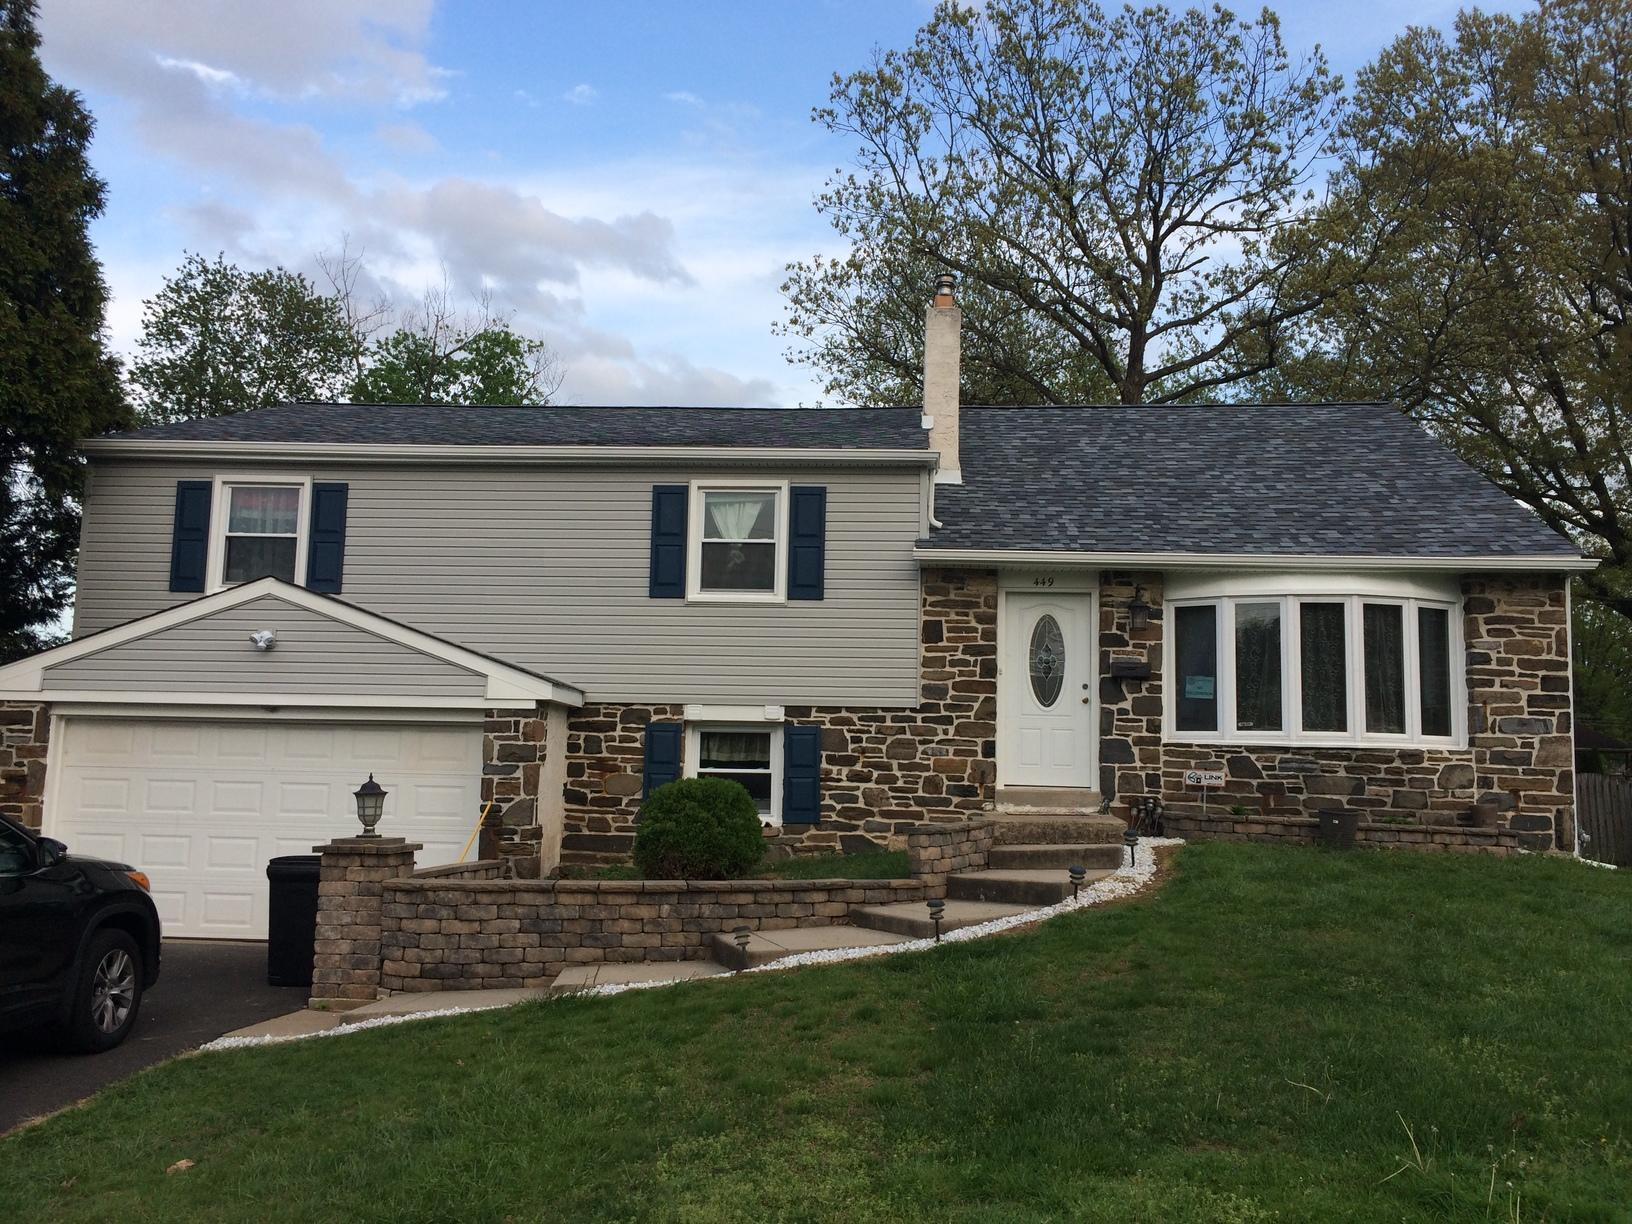 Owens Corning Roof and New Siding Installation in Warminster, PA - After Photo